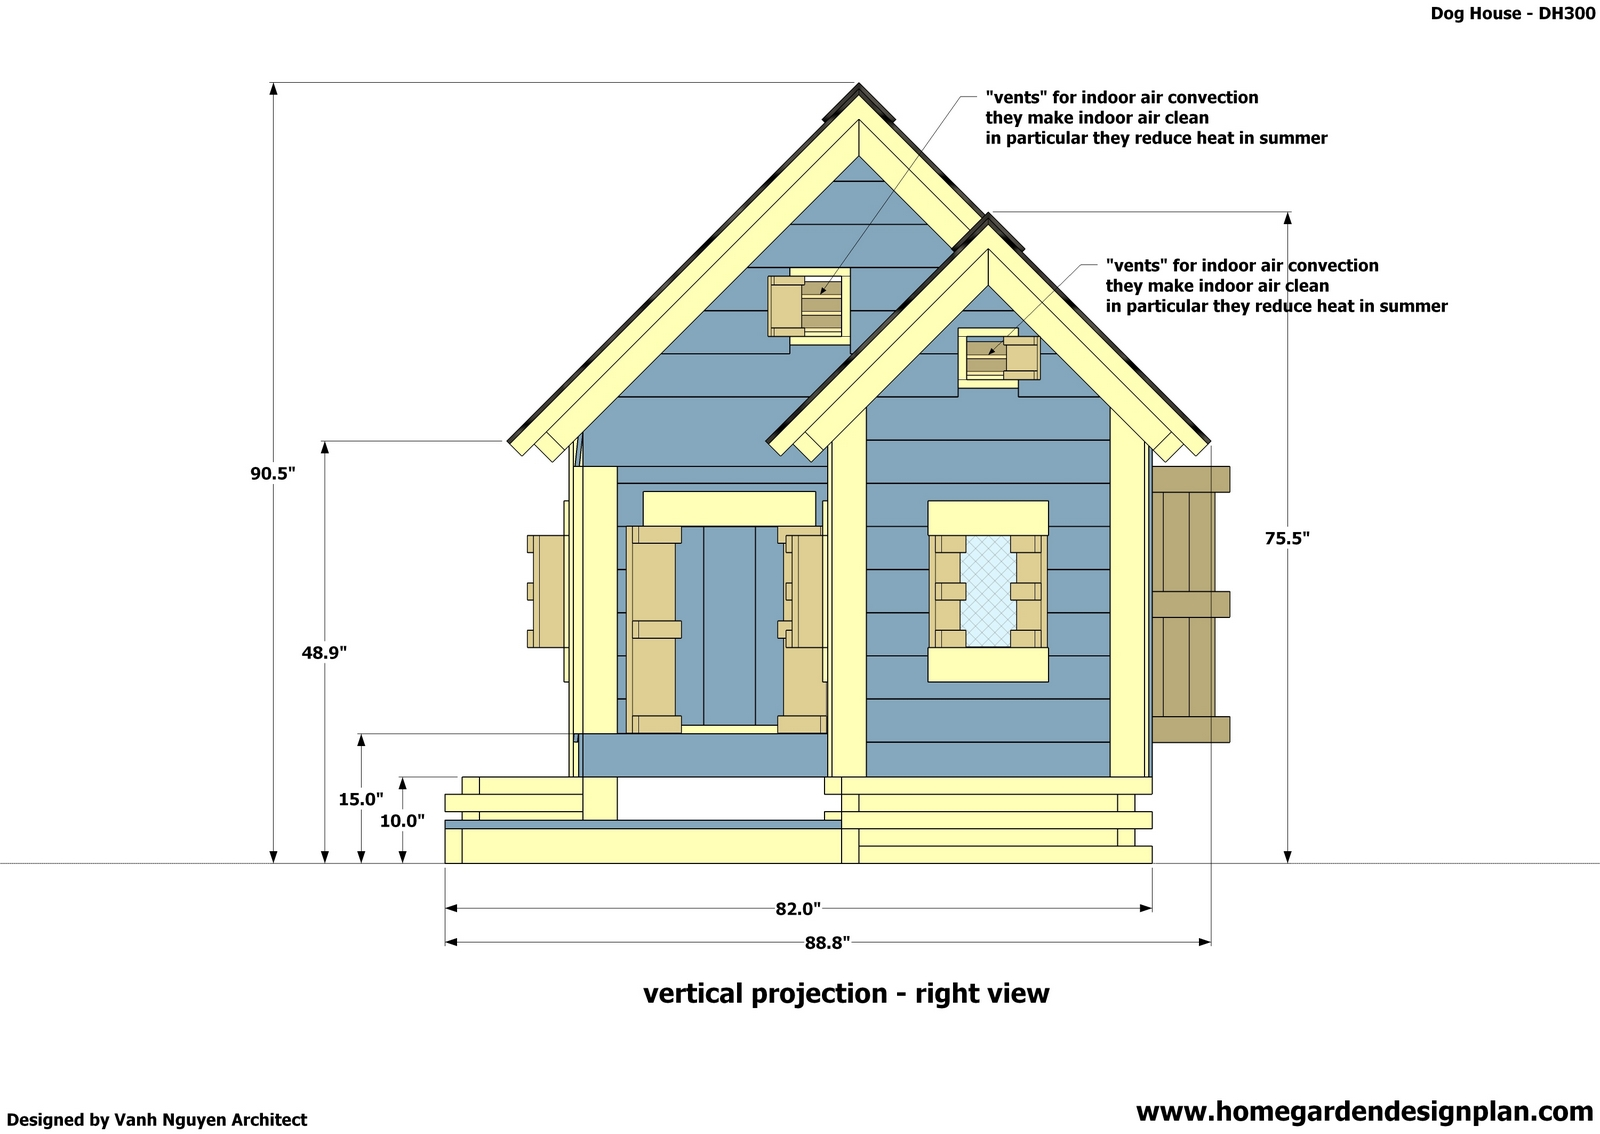 Free winter dog house plans floor plans for Dog kennel floor plans